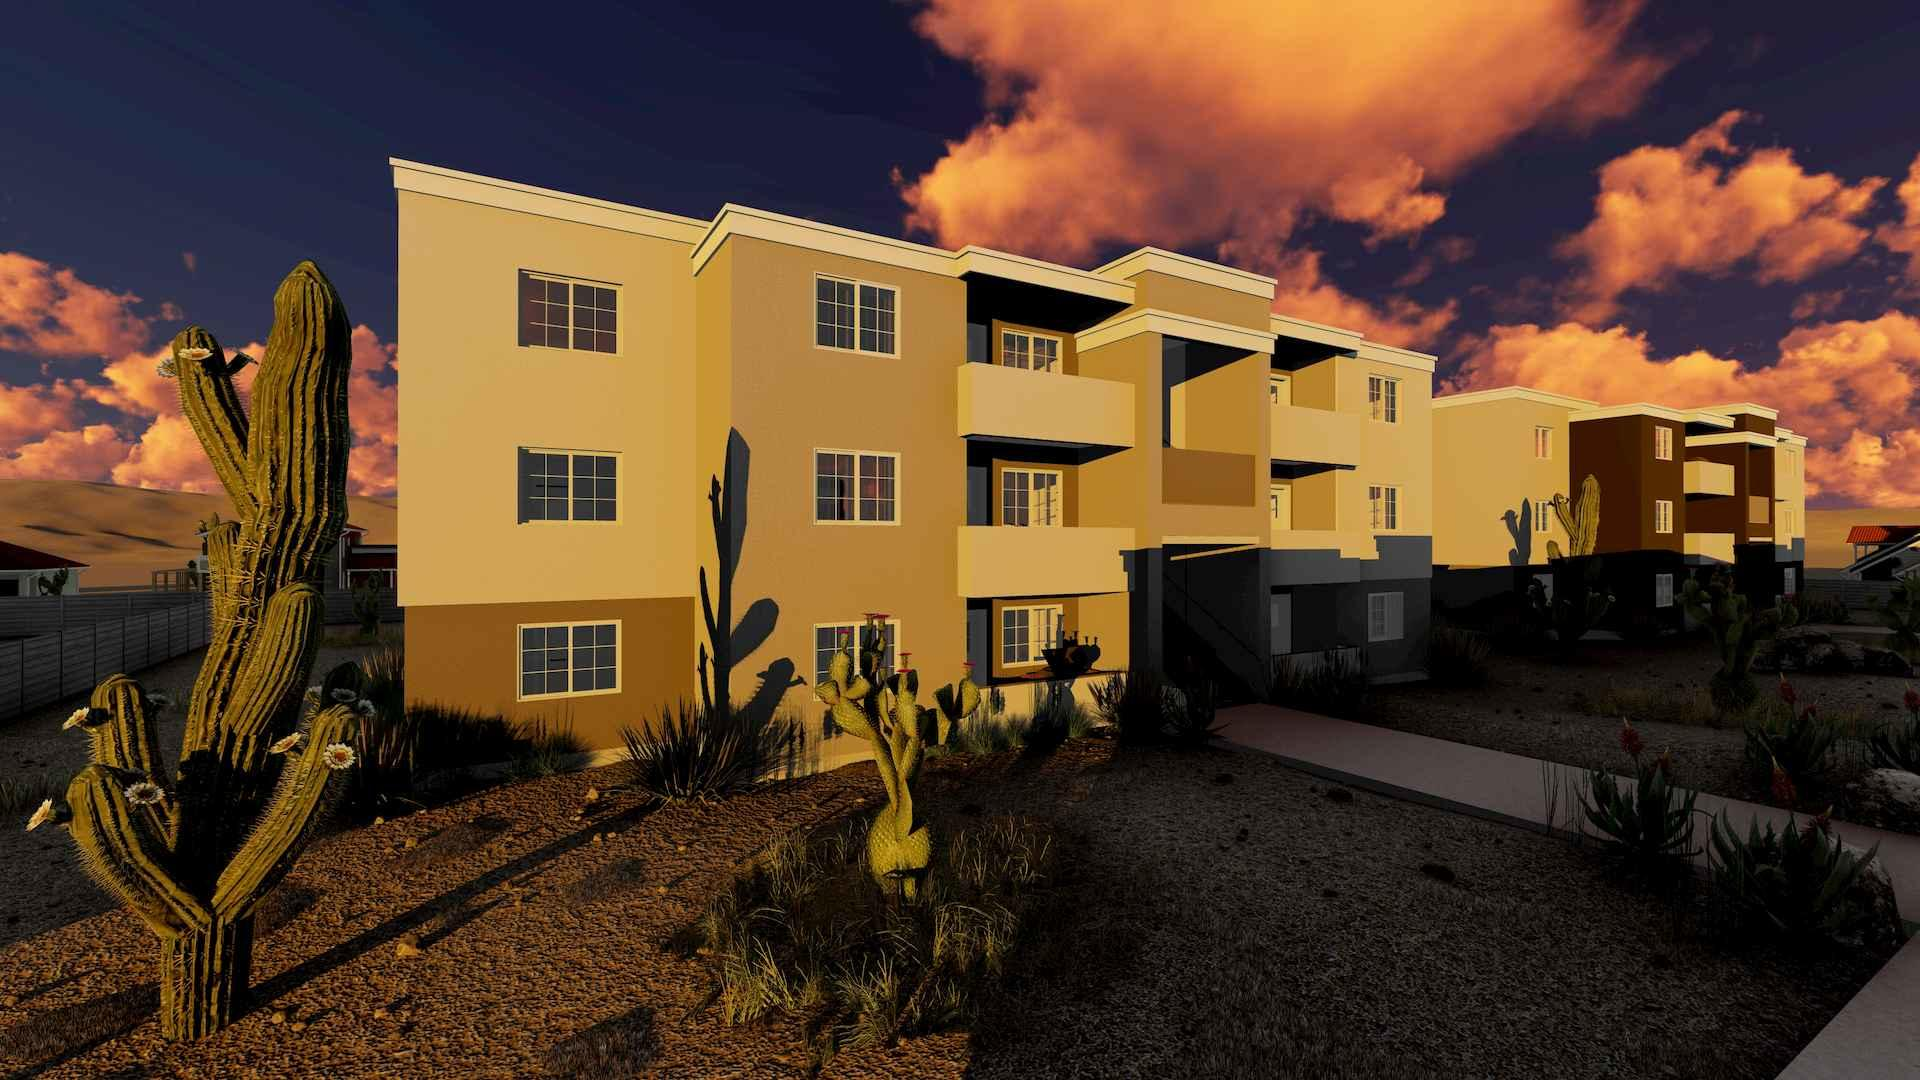 Triplexes and duplexes for sale in El Mirage, Arizona